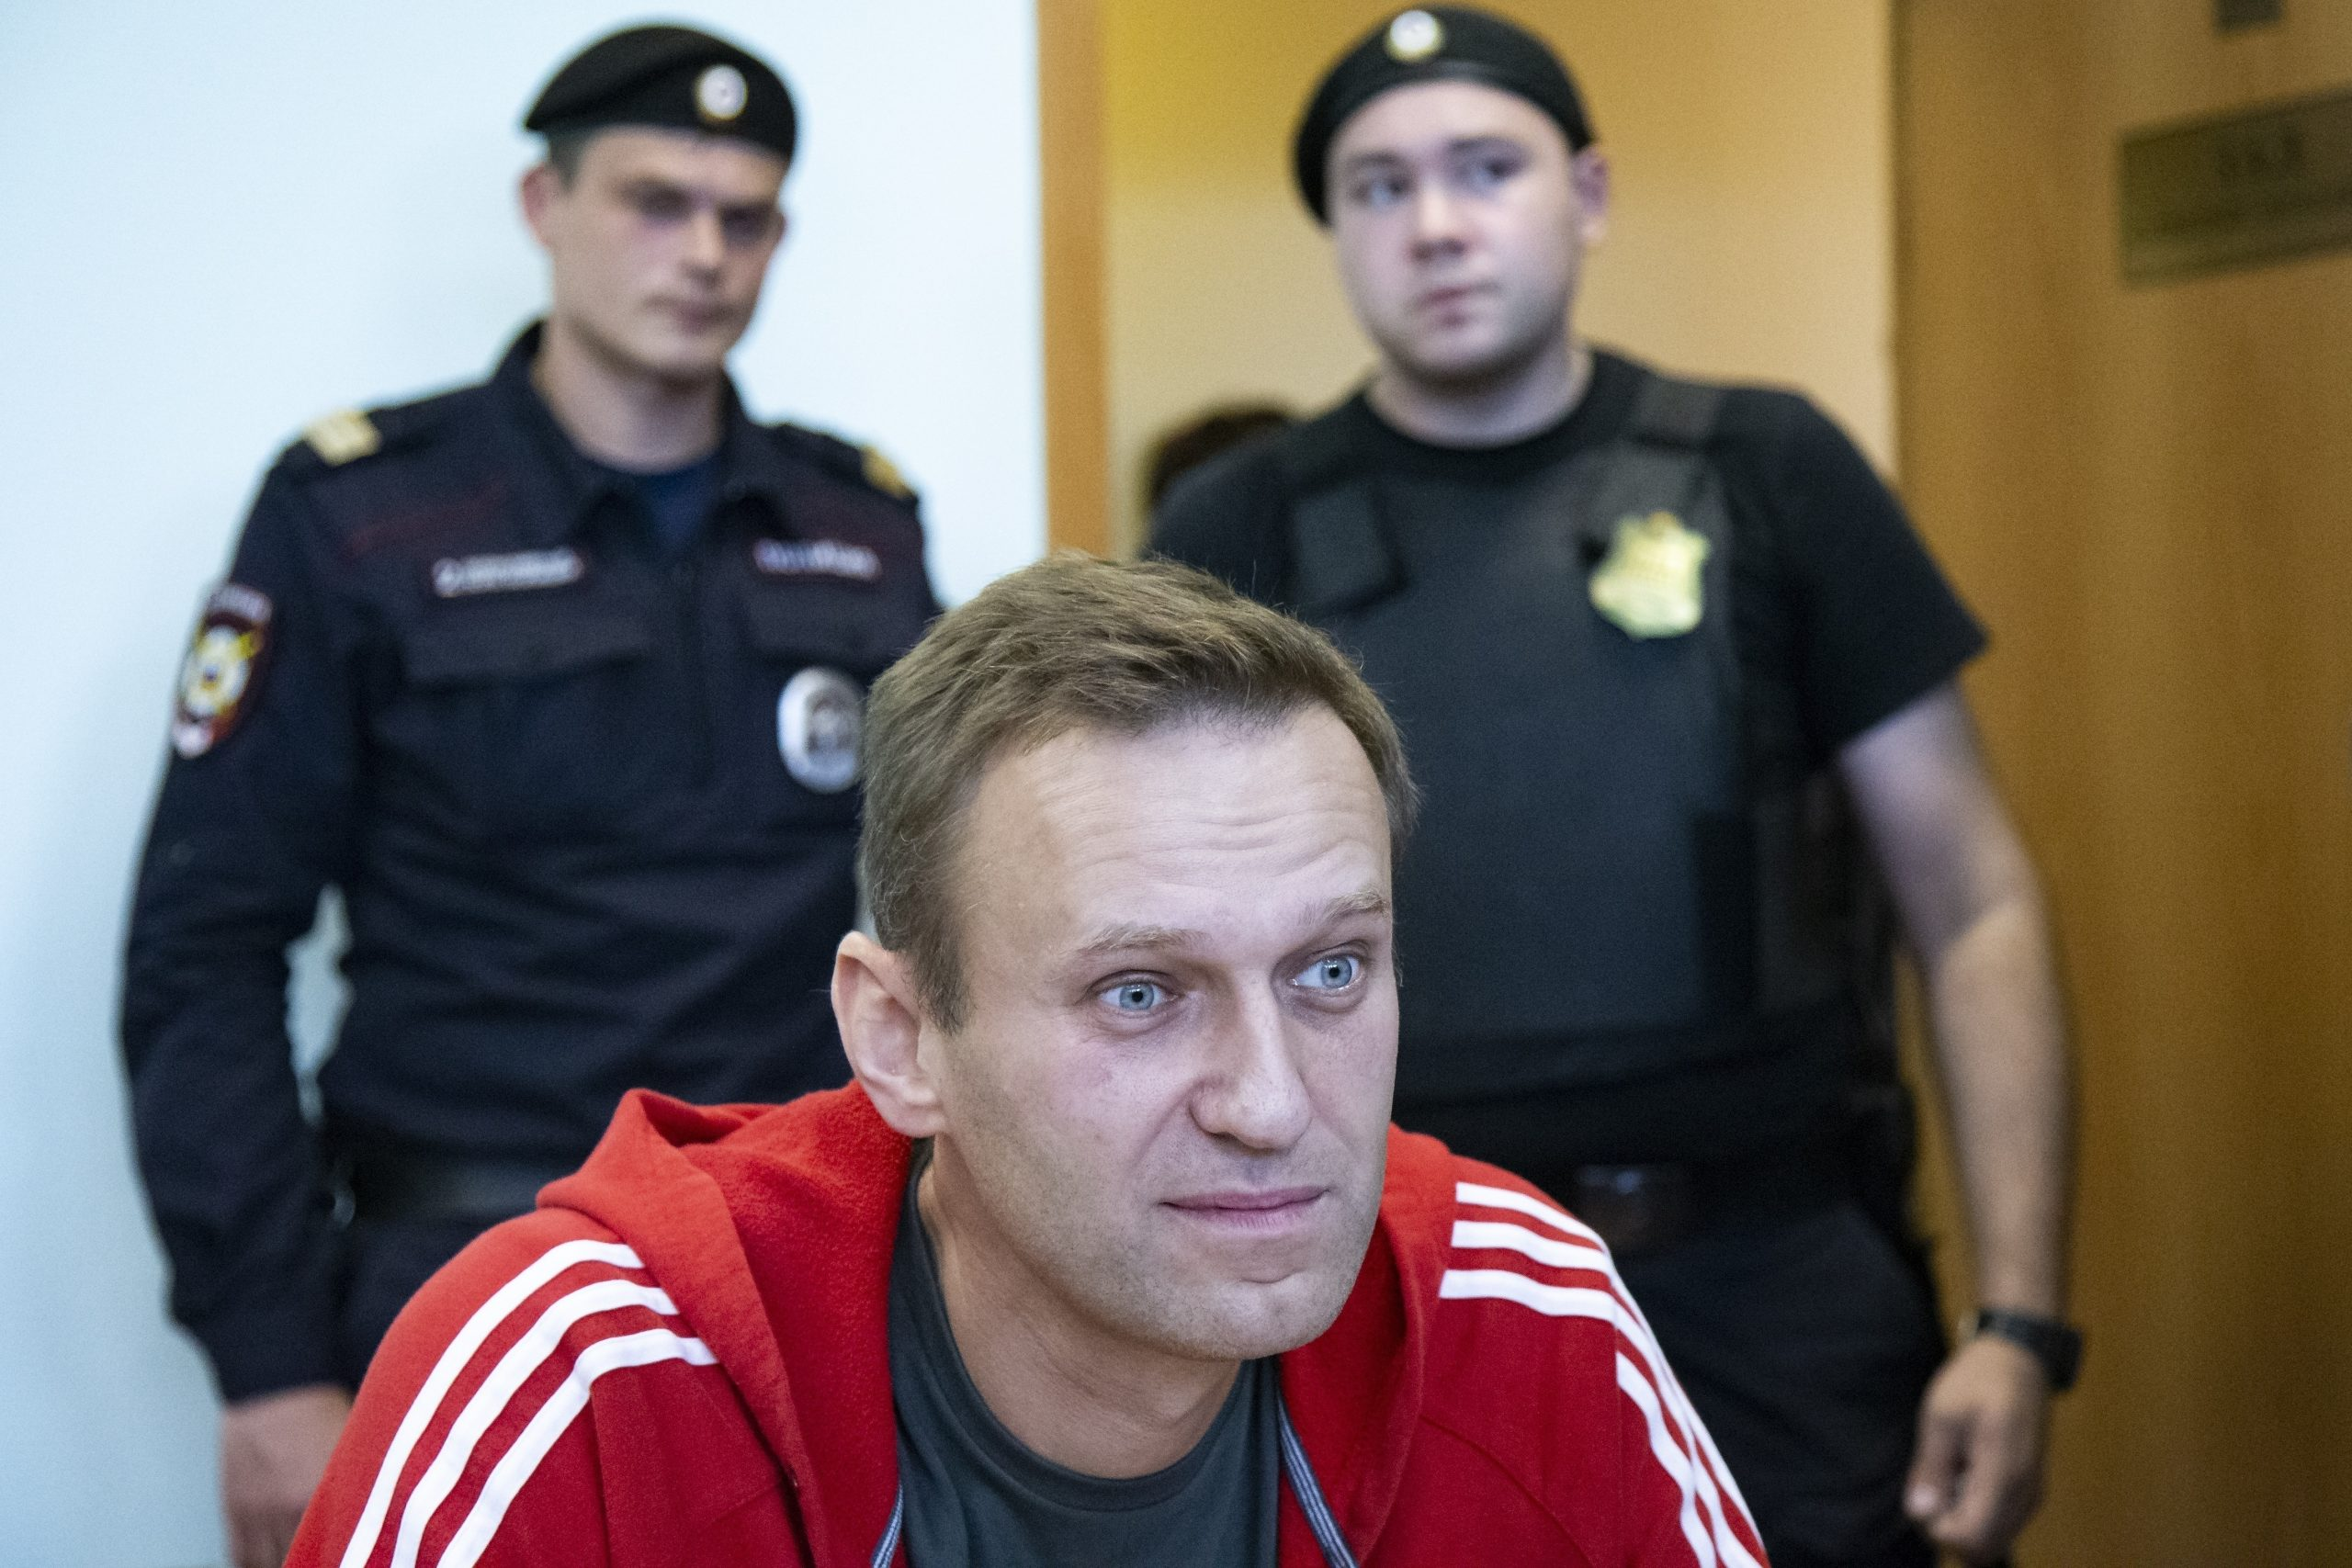 Germany has increased the pressure on Russia Alexei Navalny Poisoning Investigation